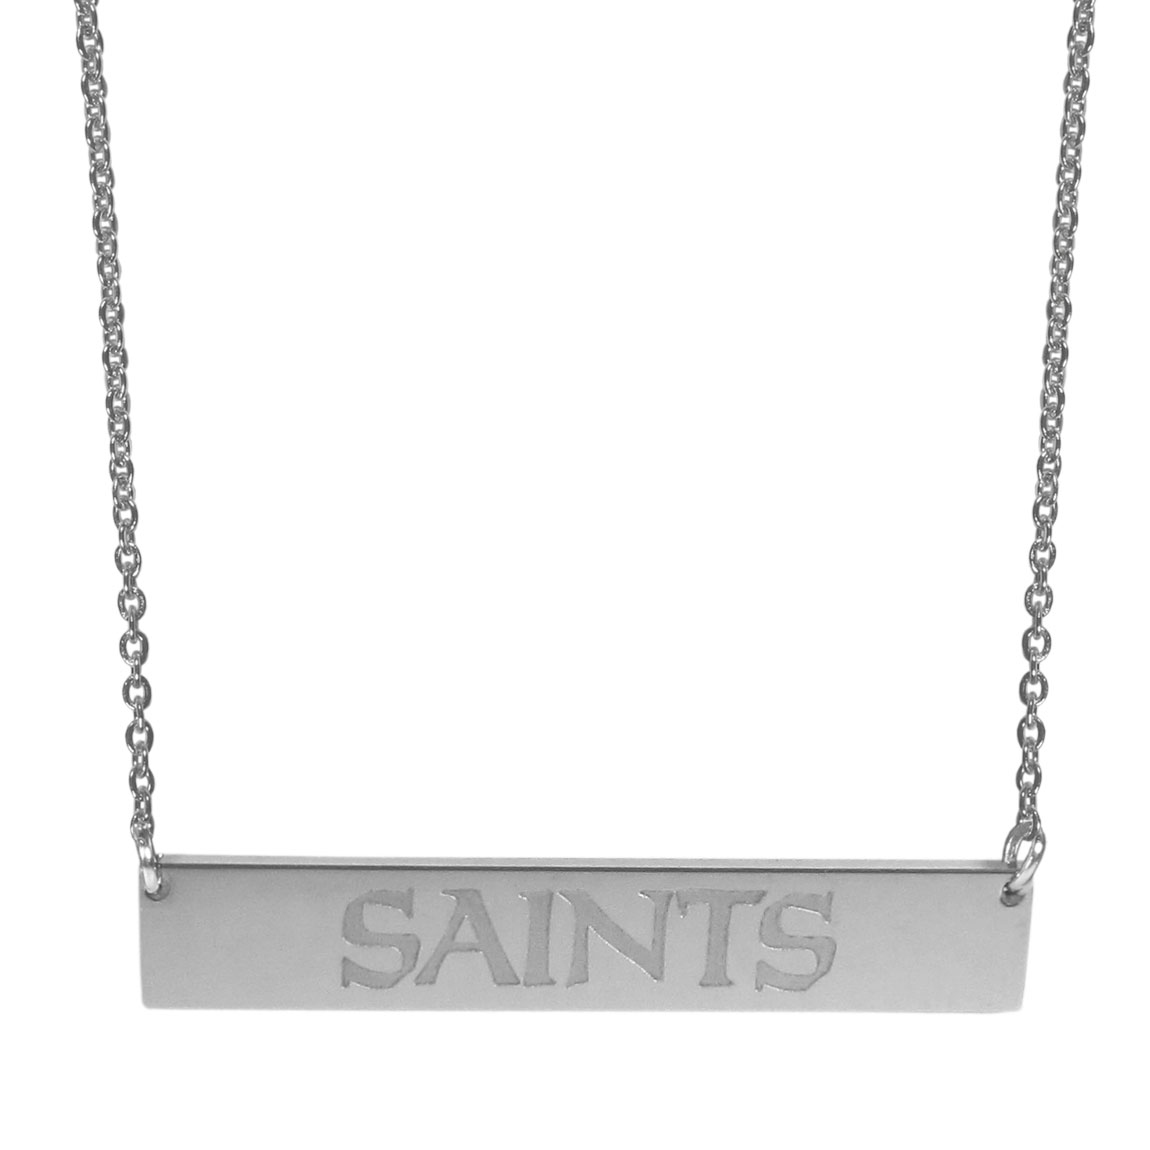 New Orleans Saints Bar Necklace - Simply beautiful New Orleans Saints bar necklace on a 20 inch link chain with 2 inch adjustable extender. This light-weight bar necklace has a stylish silver colored finish with the team name expertly etched on the 1.5 inch bar. Every female  fan will enjoy this contempory fashion accessory.